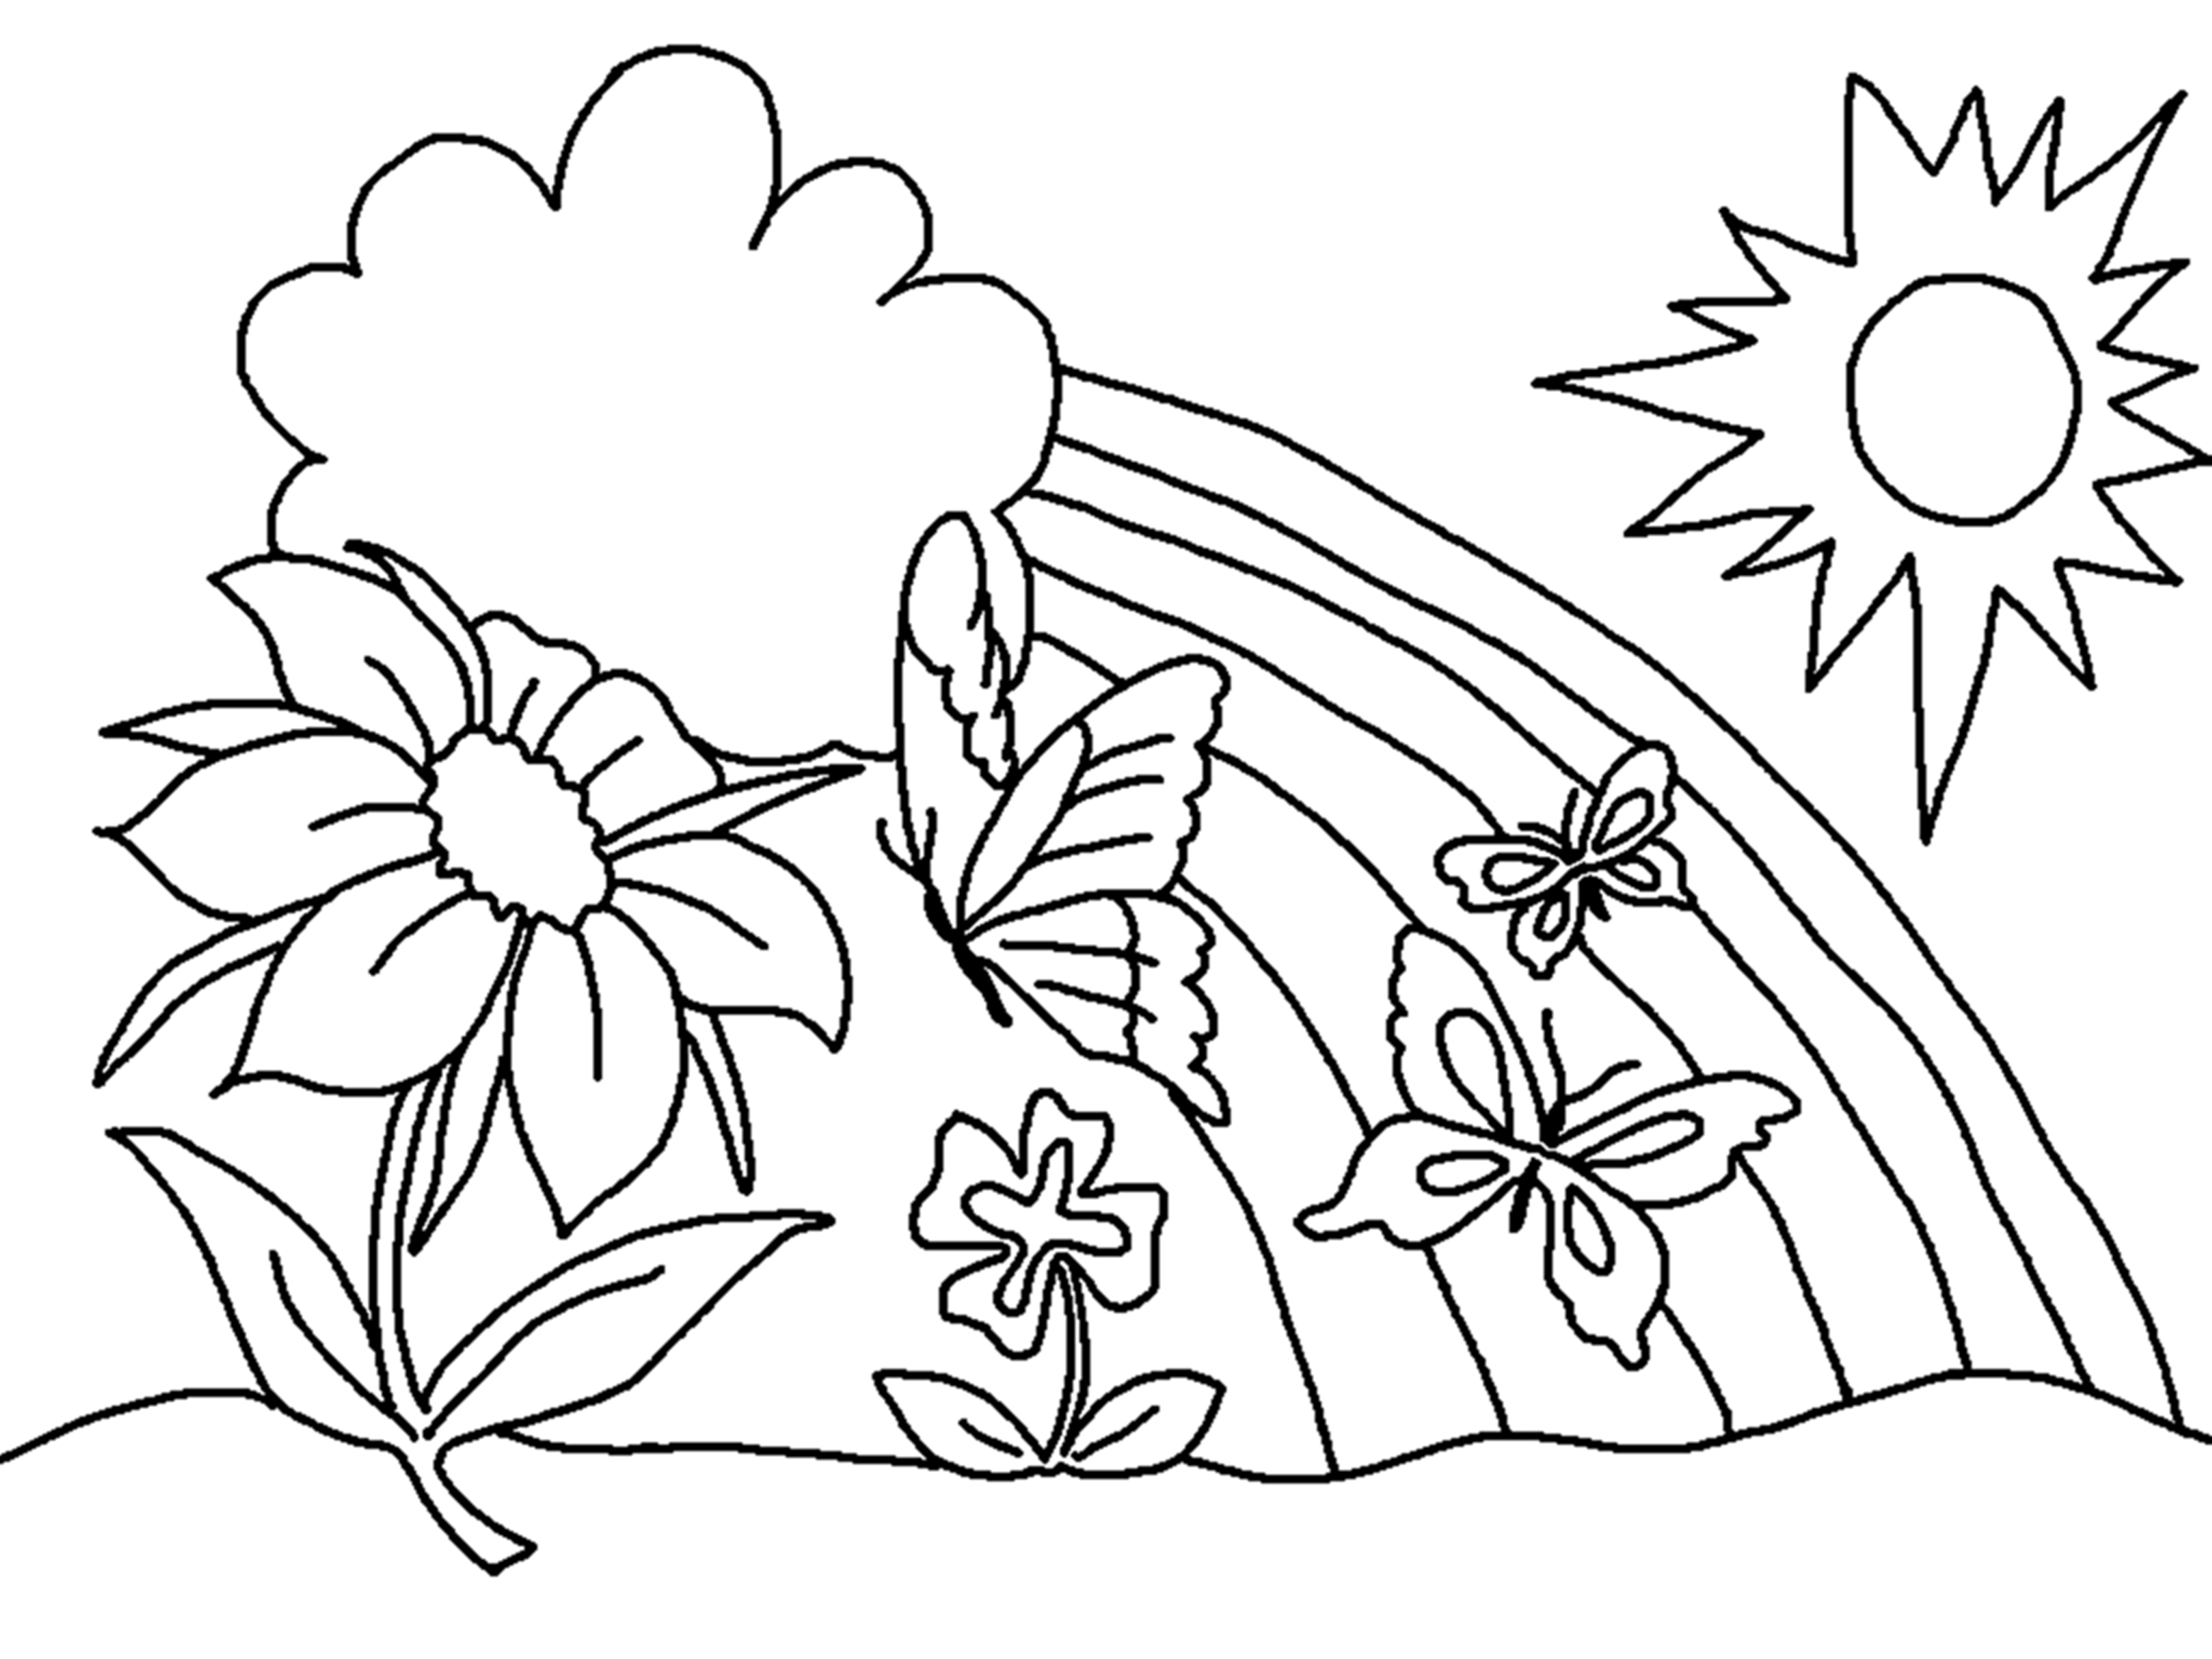 childrens coloring pages flowers flowers coloring pages for kids printable free childrens flowers coloring pages